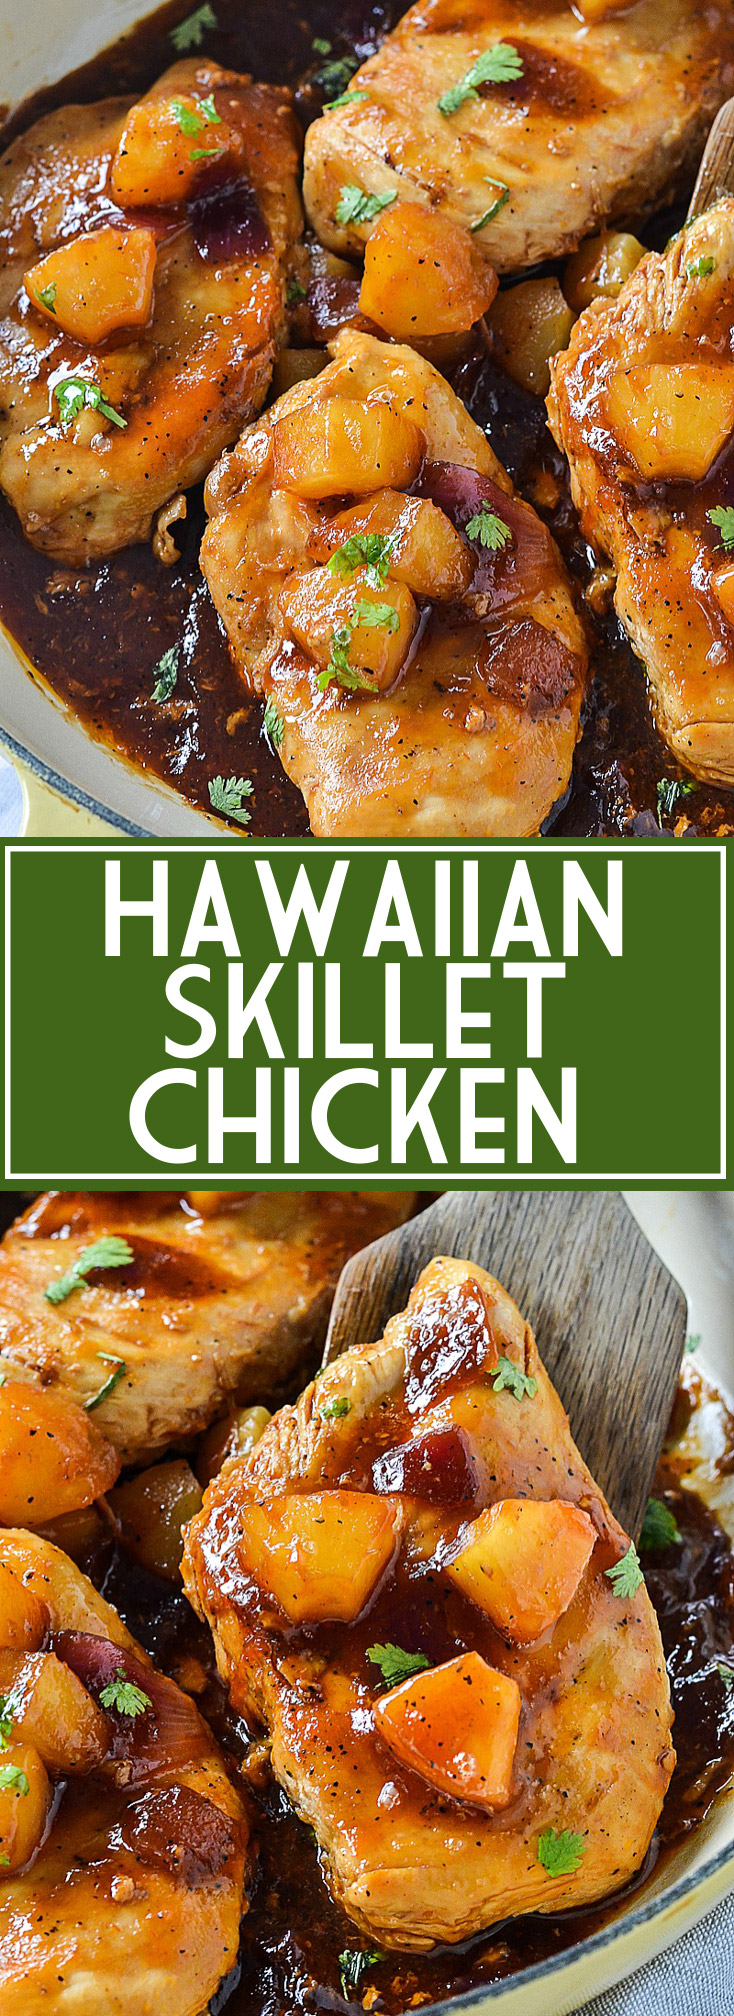 Easy Hawaiian Skillet Chicken | www.motherthyme.com